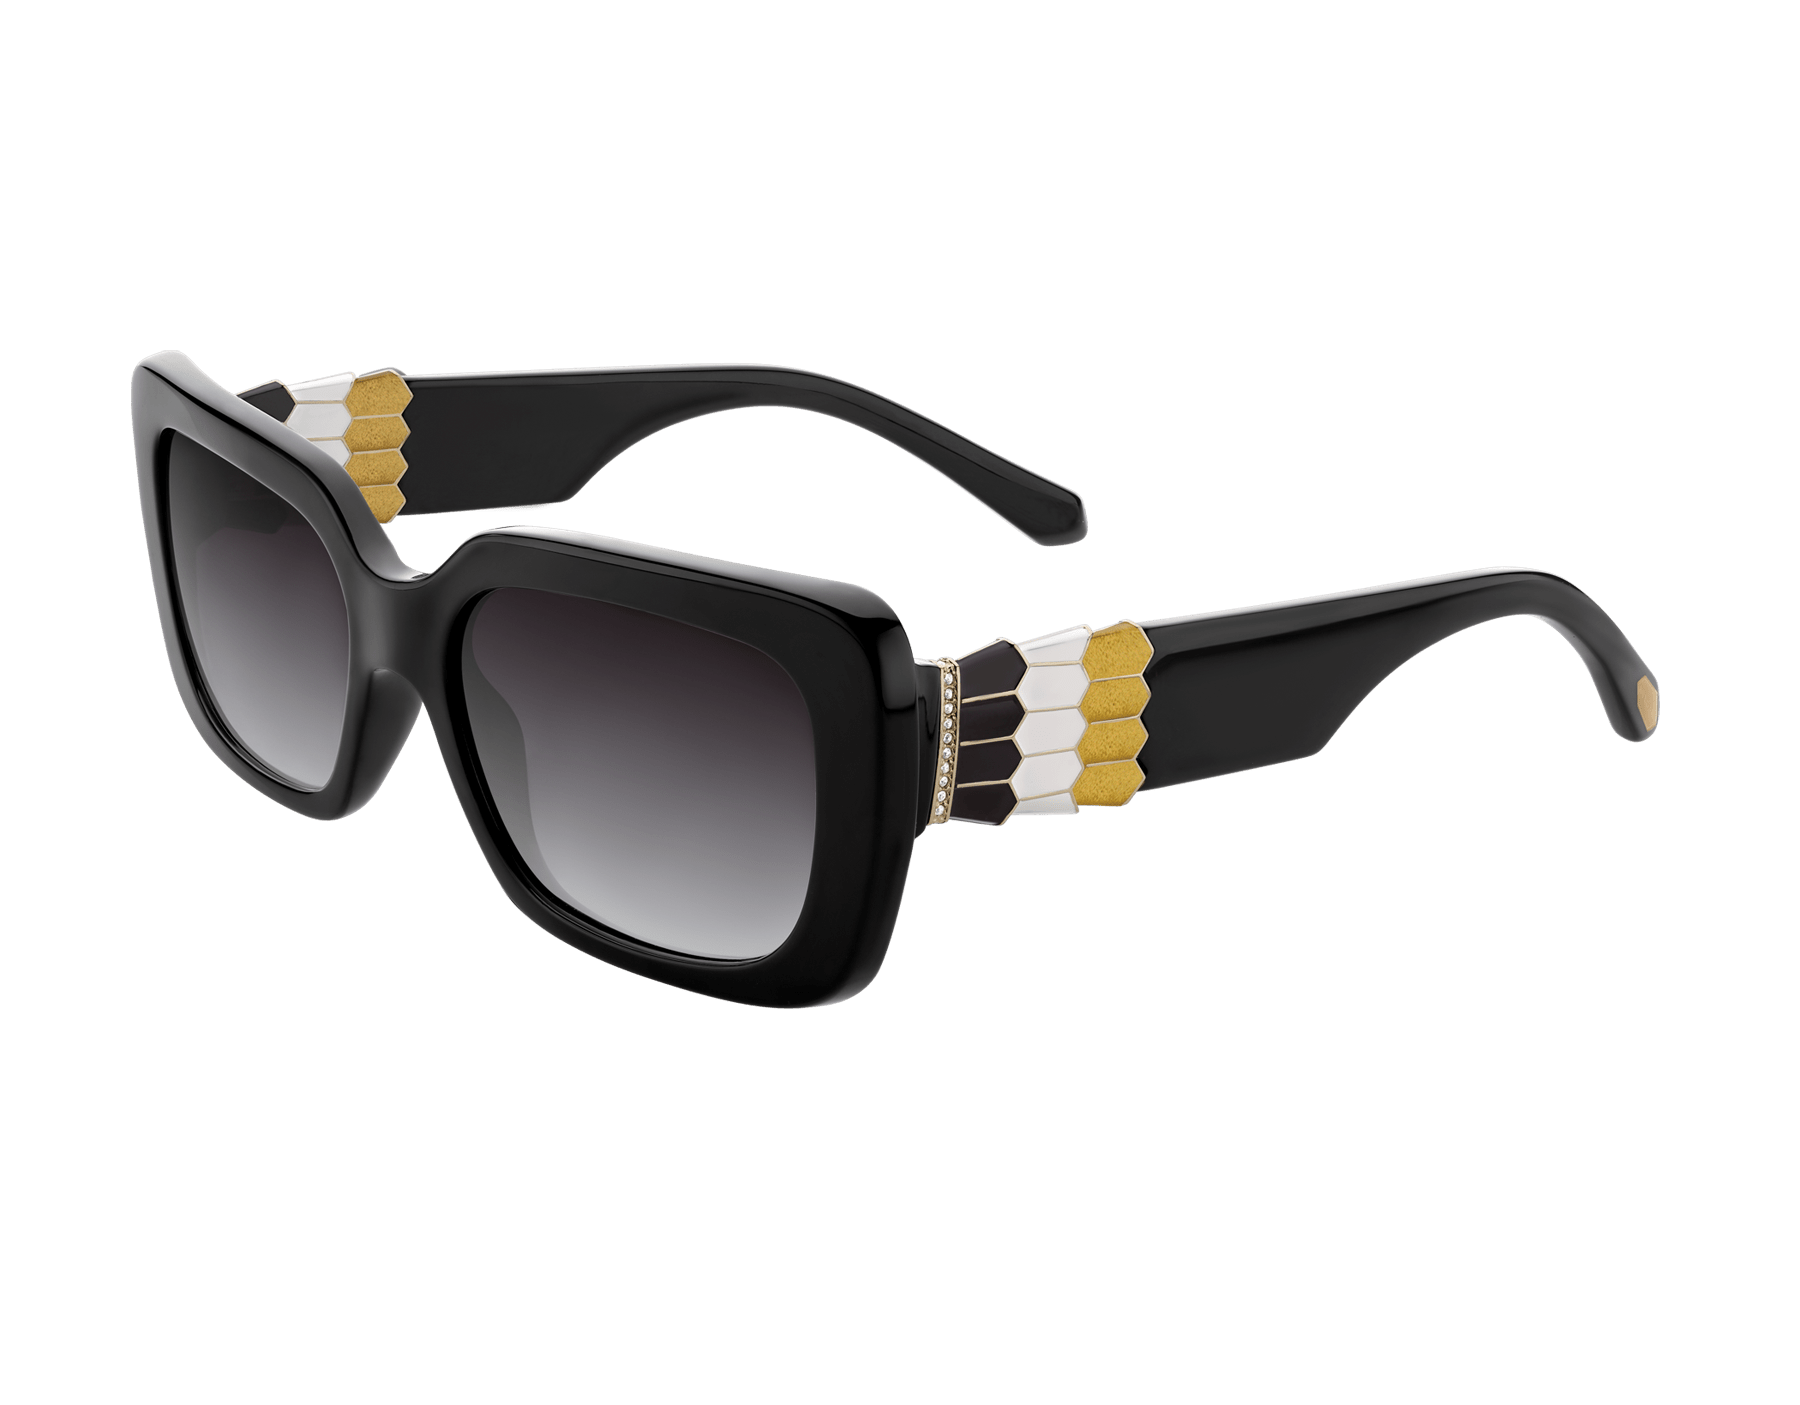 Bulgari Serpenti Back-to-scale rectangular acetate sunglasses. 903947 image 1